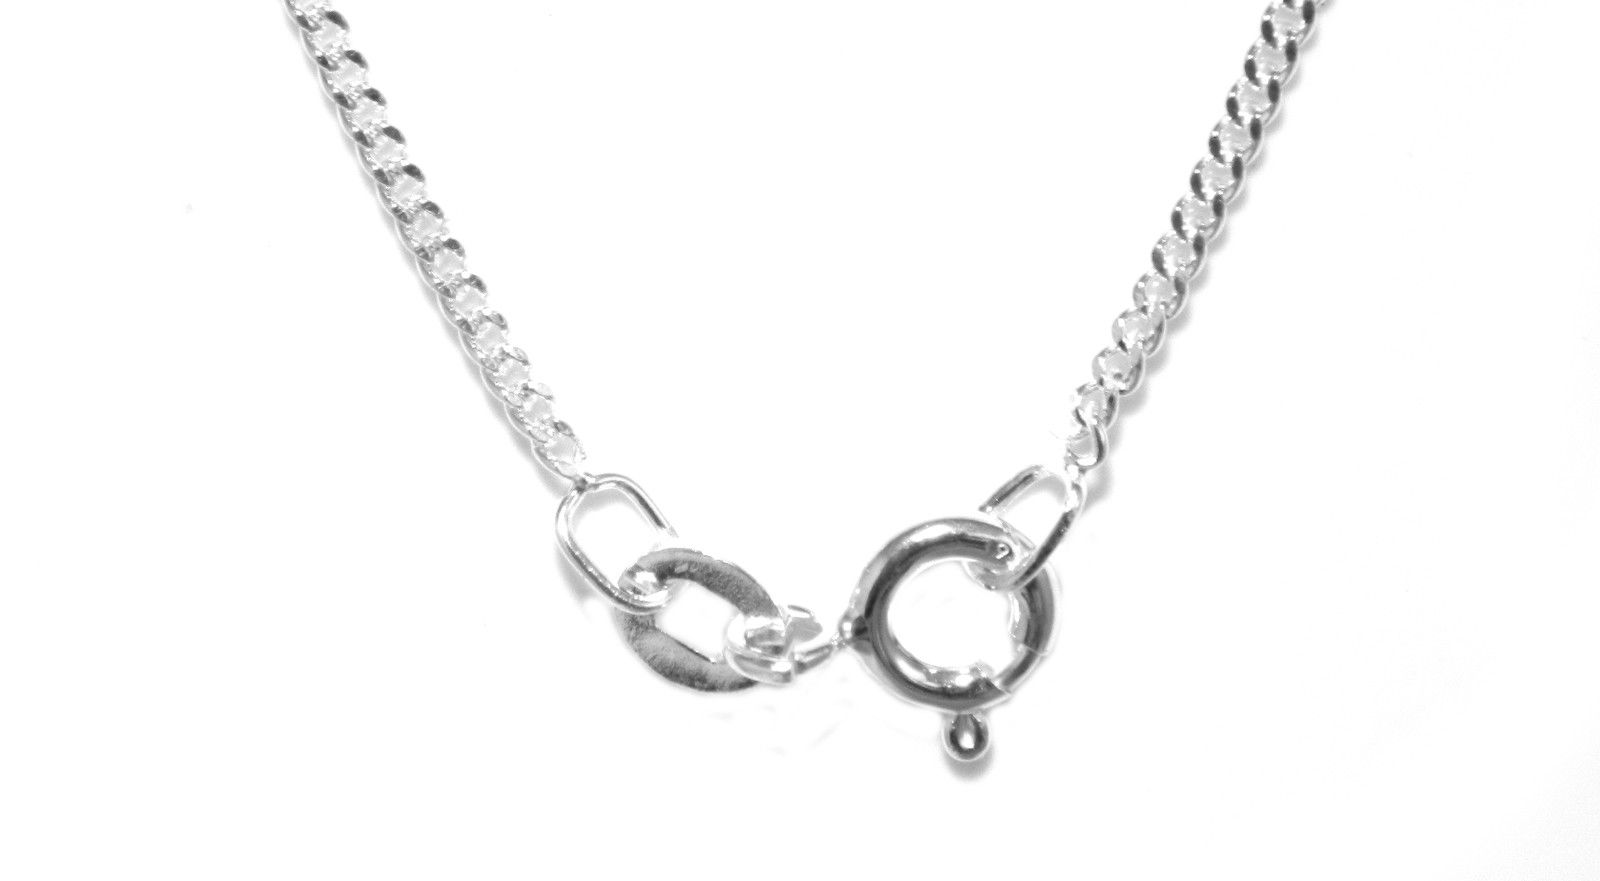 18 Inch Chain 2mm Gauge Curb Style In Sterling Silver